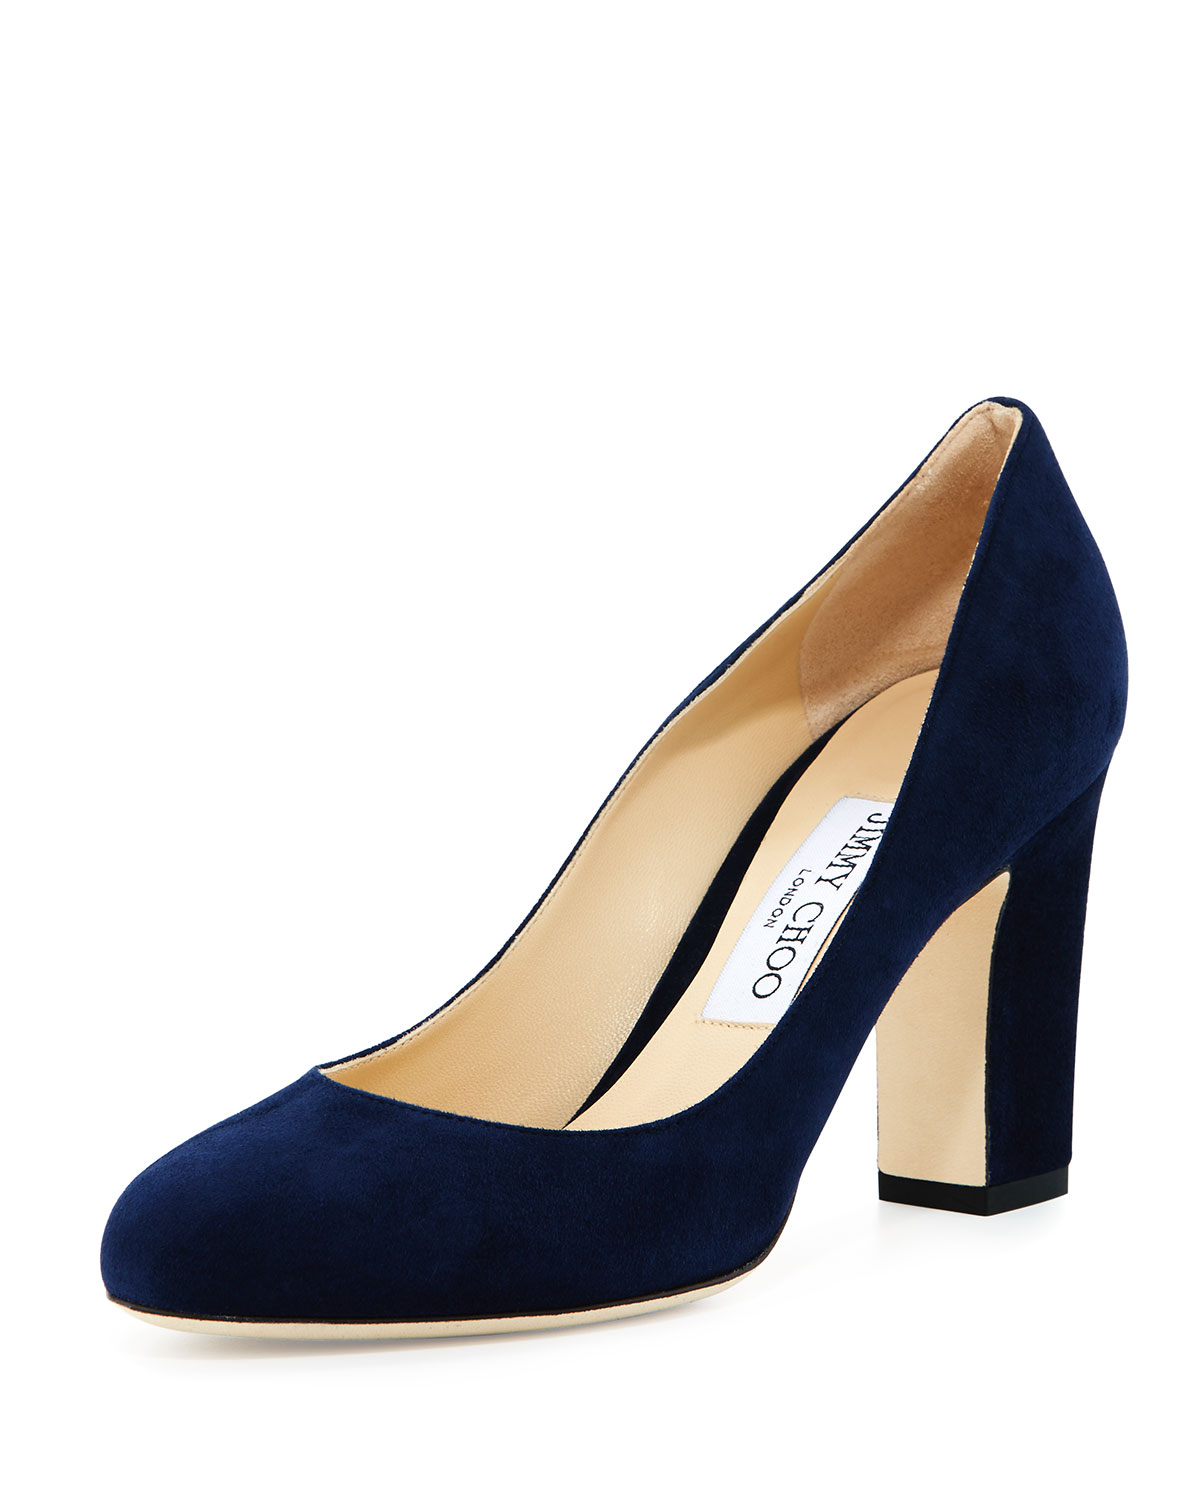 907276731a40 Jimmy Choo Billie Suede 85mm Pump